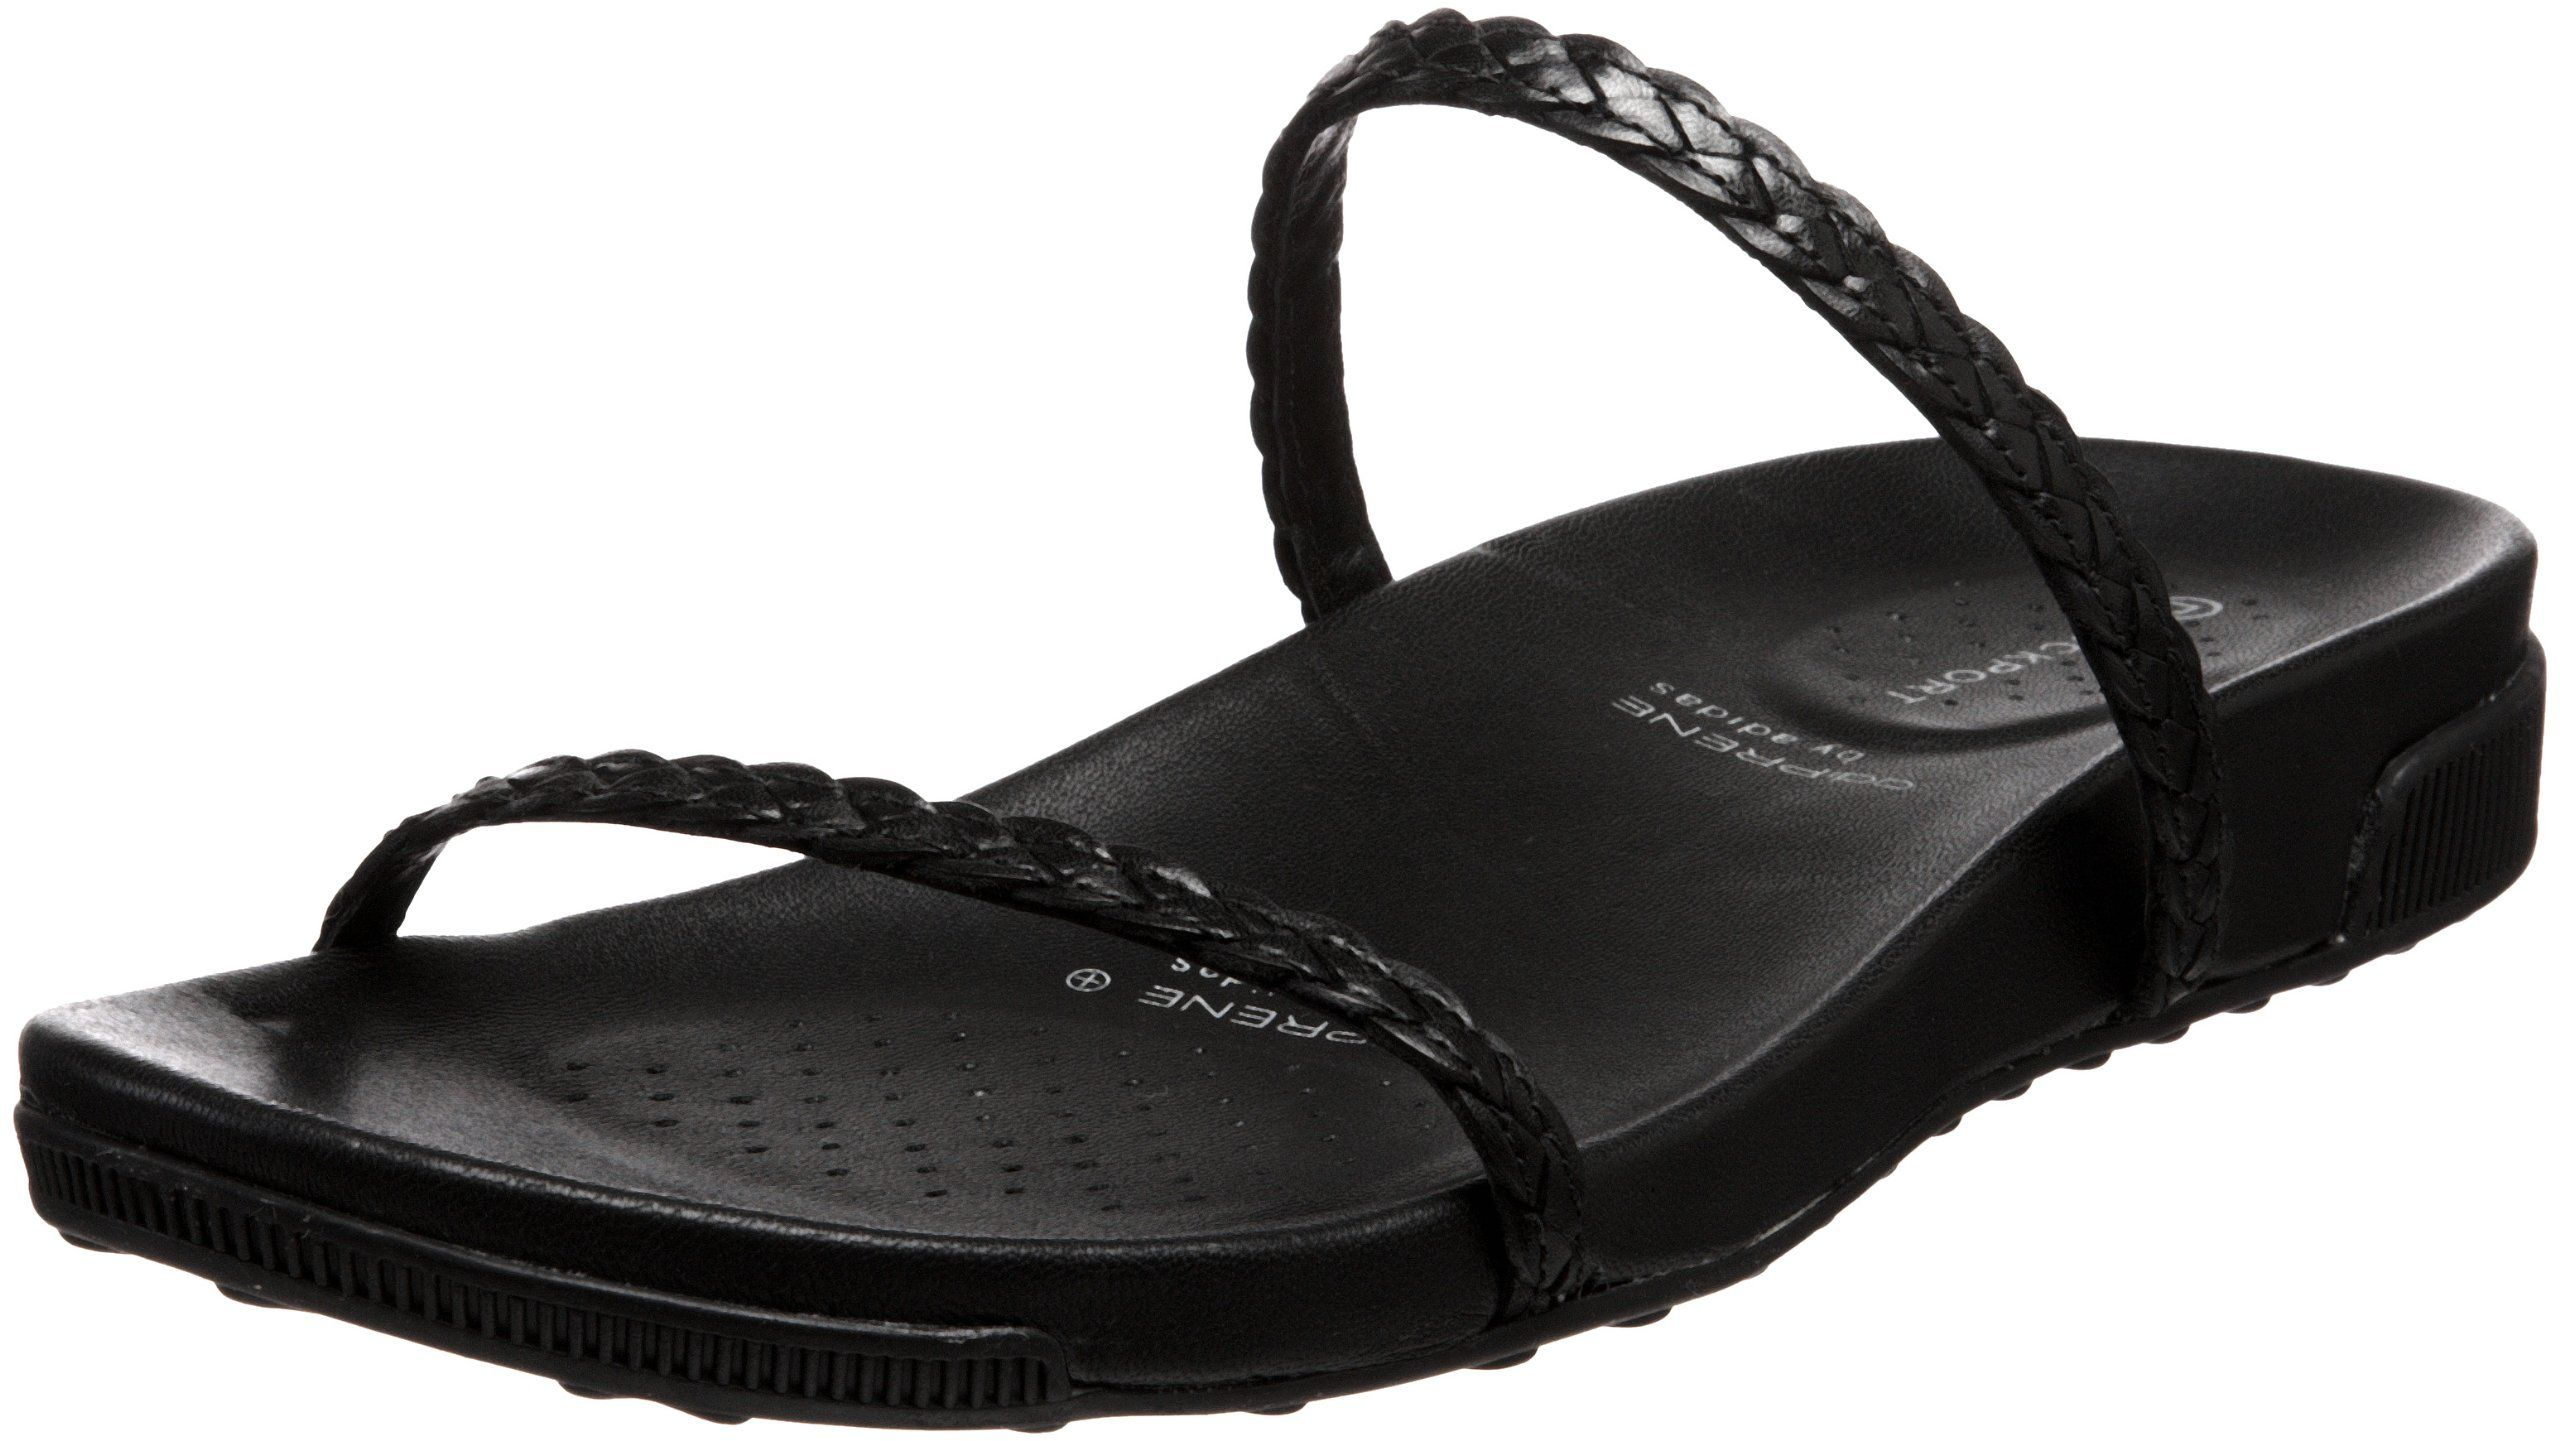 Amazon.com: Rockport Women's Jada 2 Band Slide Sandal: Shoes Rockport Women: